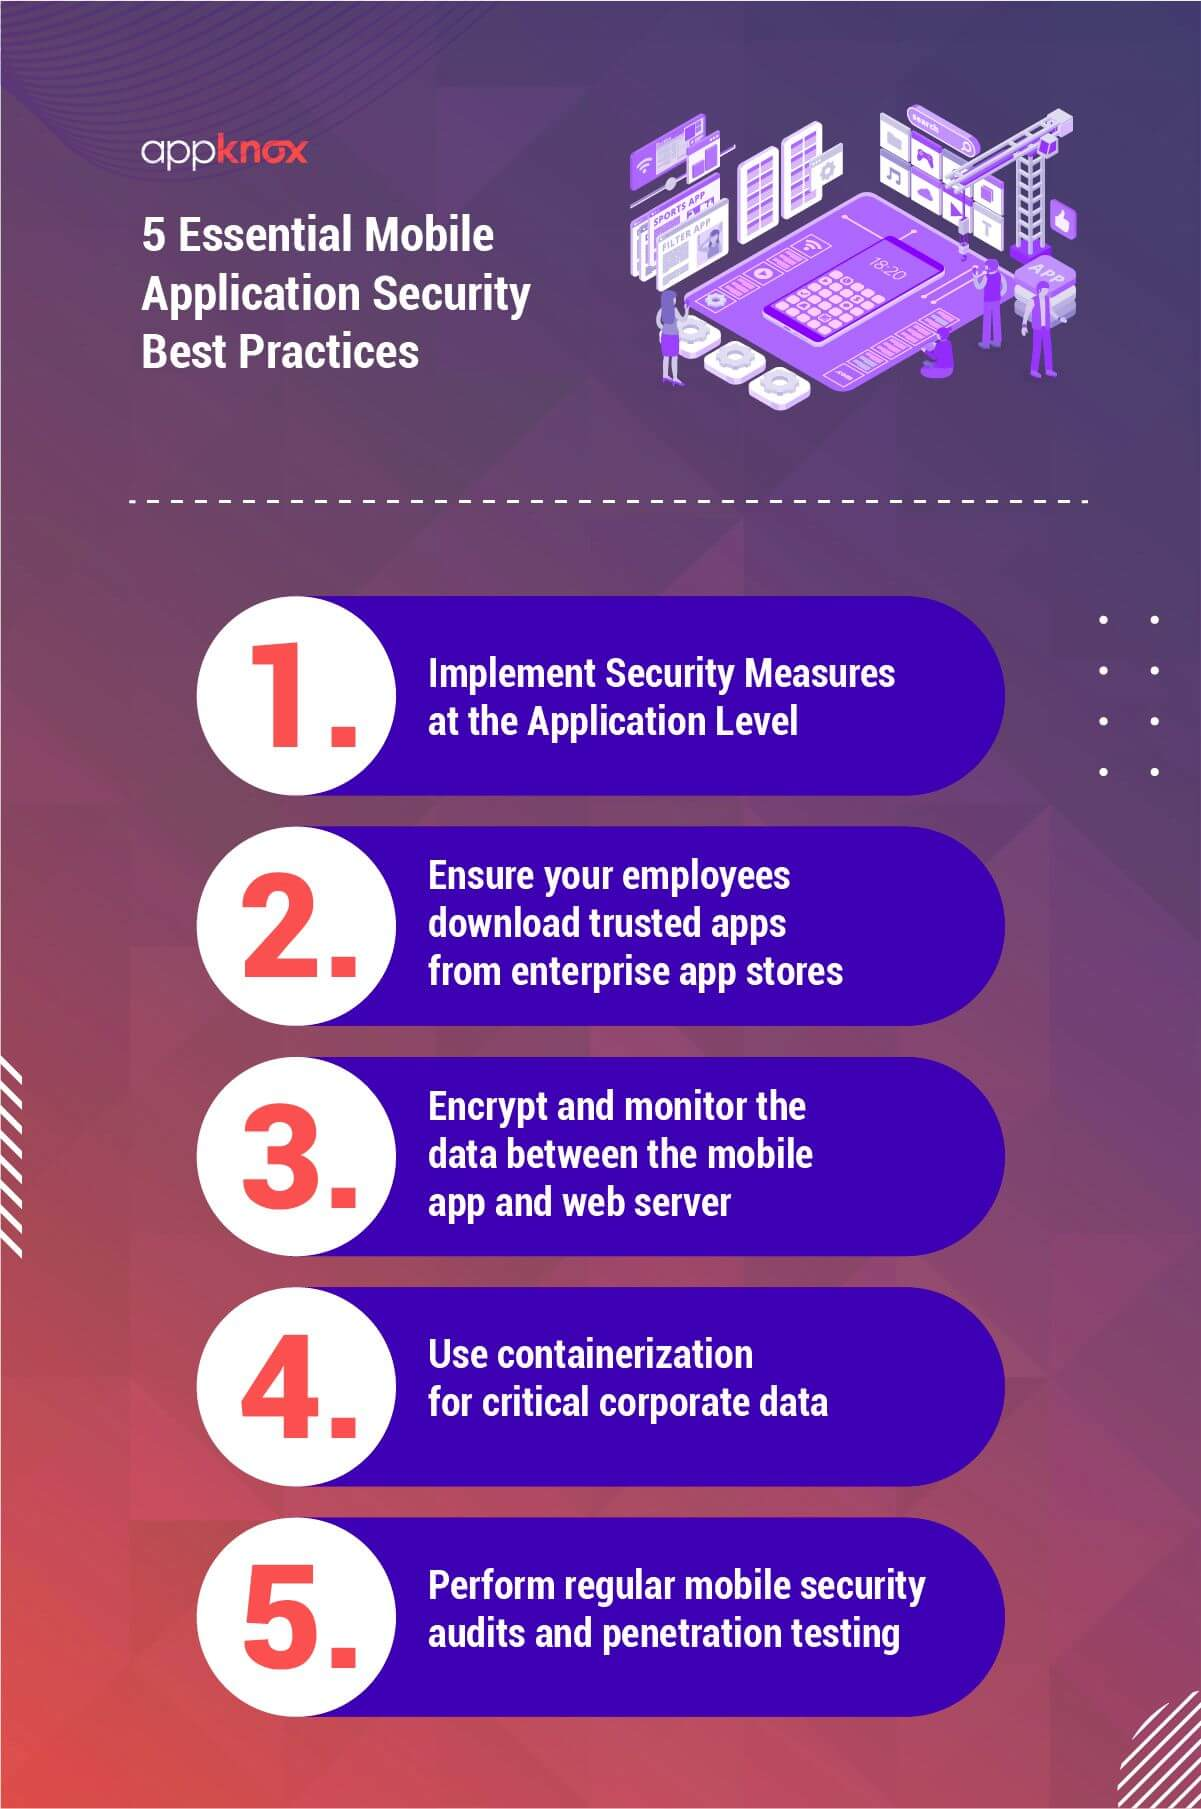 5 Essential Mobile Application Security Best Practices